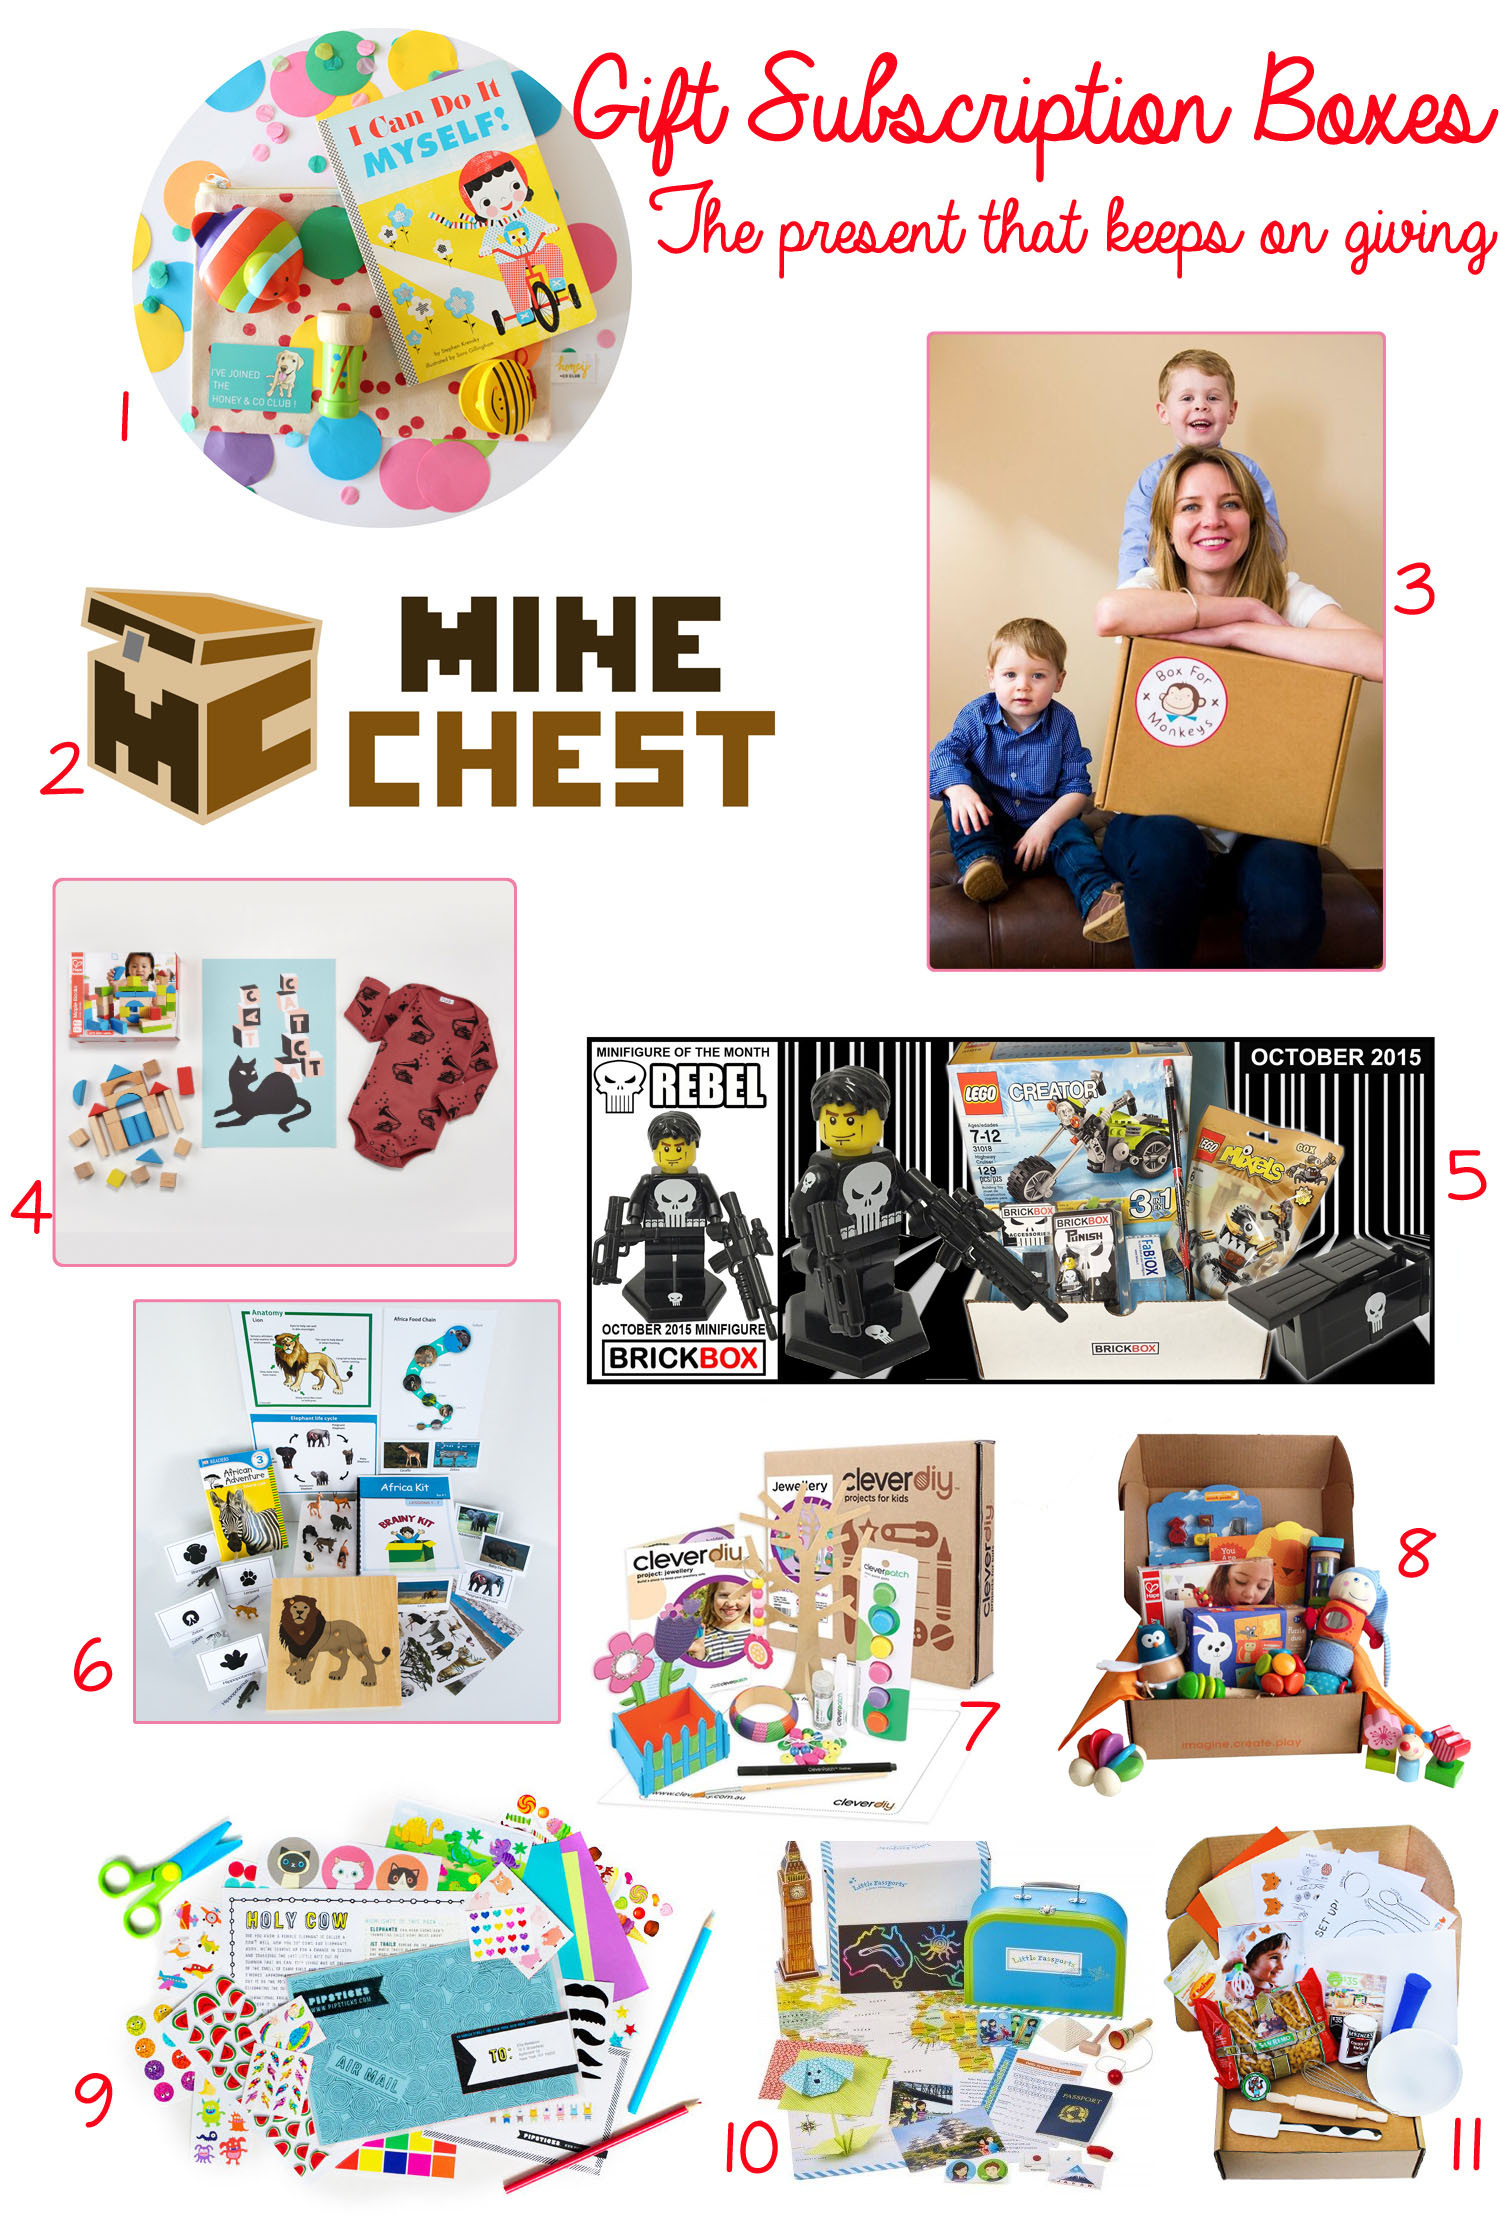 Gift Subscription For Kids  Gift Subscription Boxes For Kids The Present That Keeps